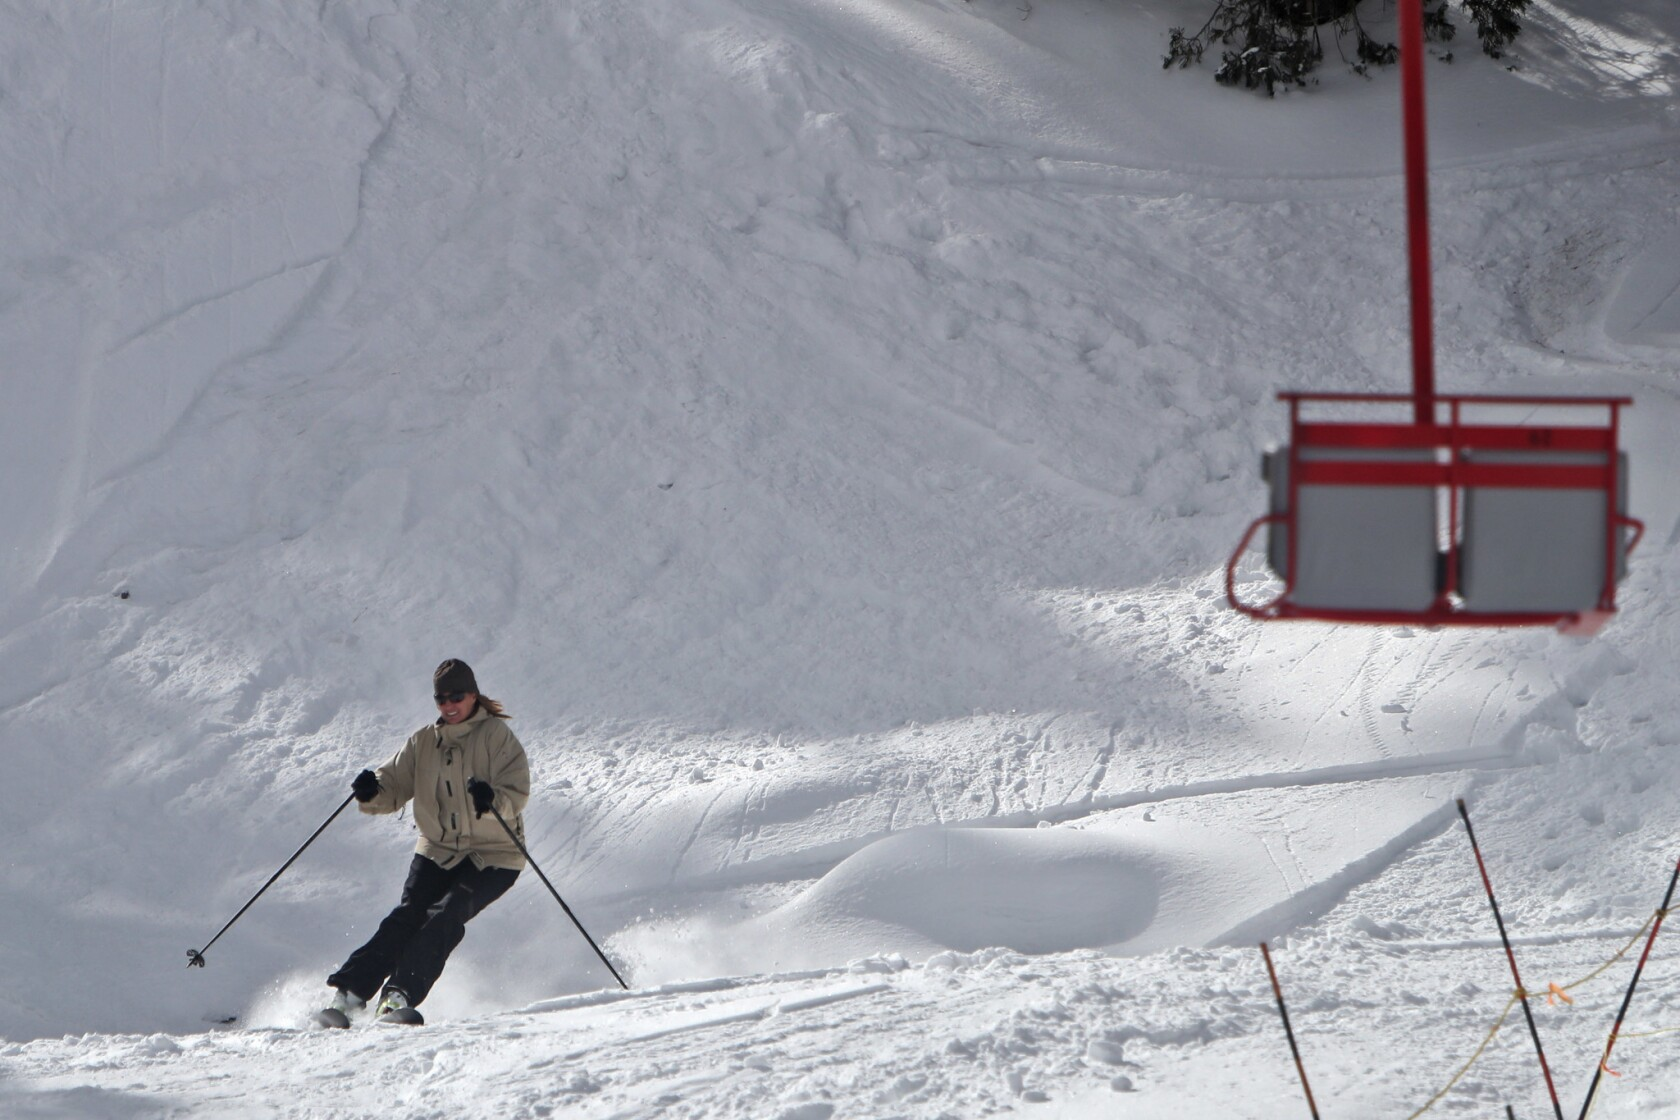 Powdery slopes draw skiers to Waterman despite obstacles